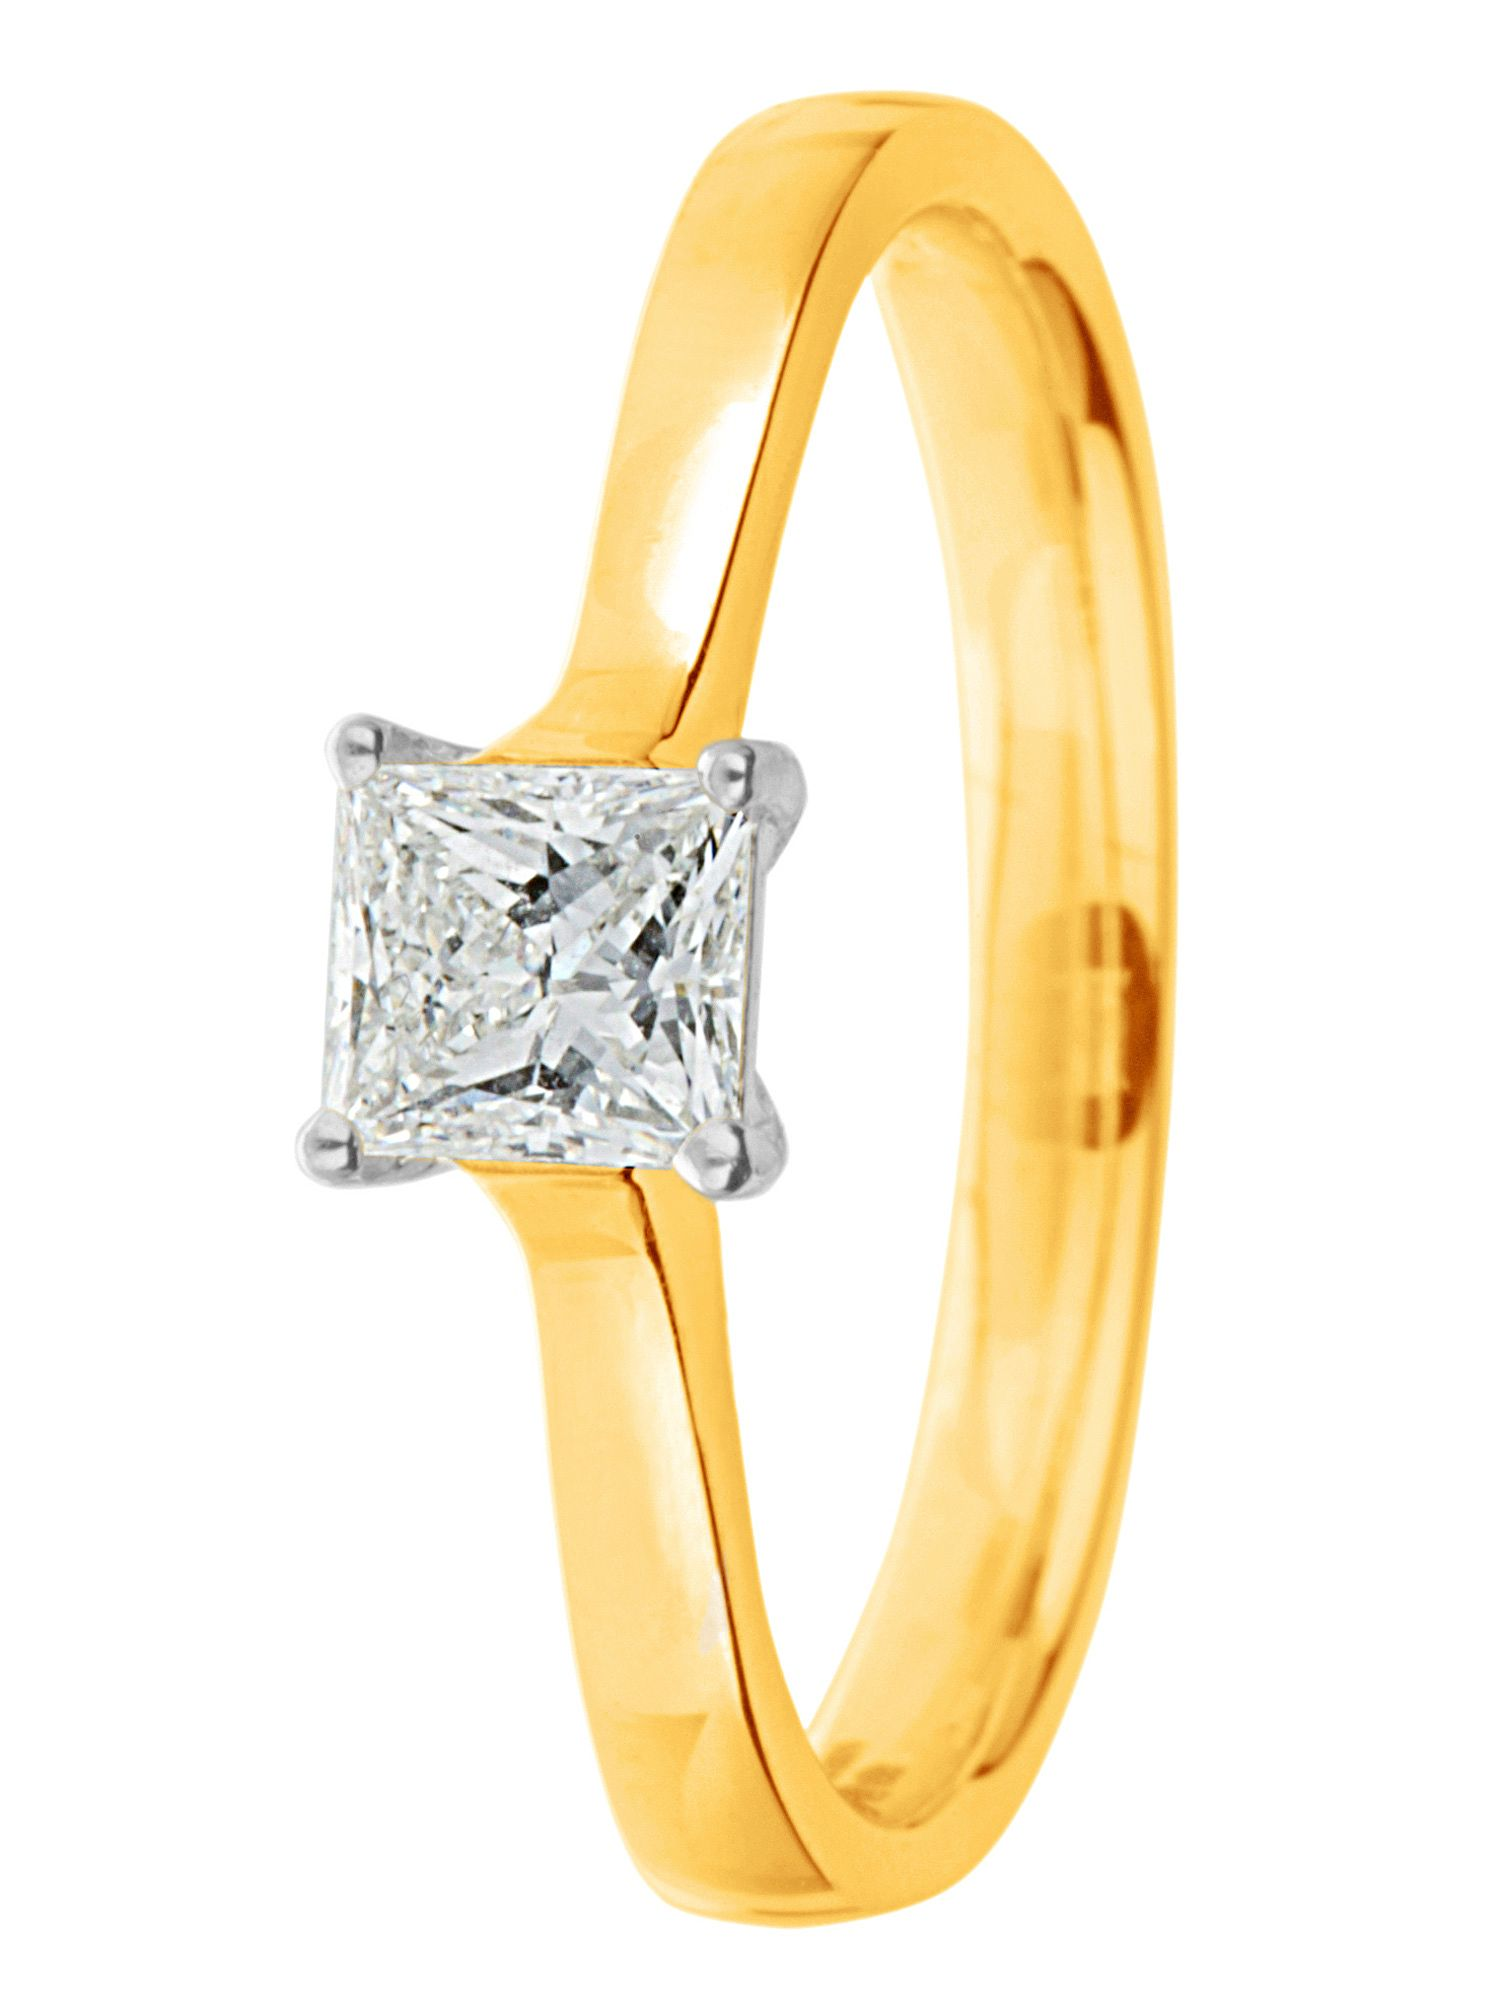 Ardesco 18ct gold diamond solitaire Gold